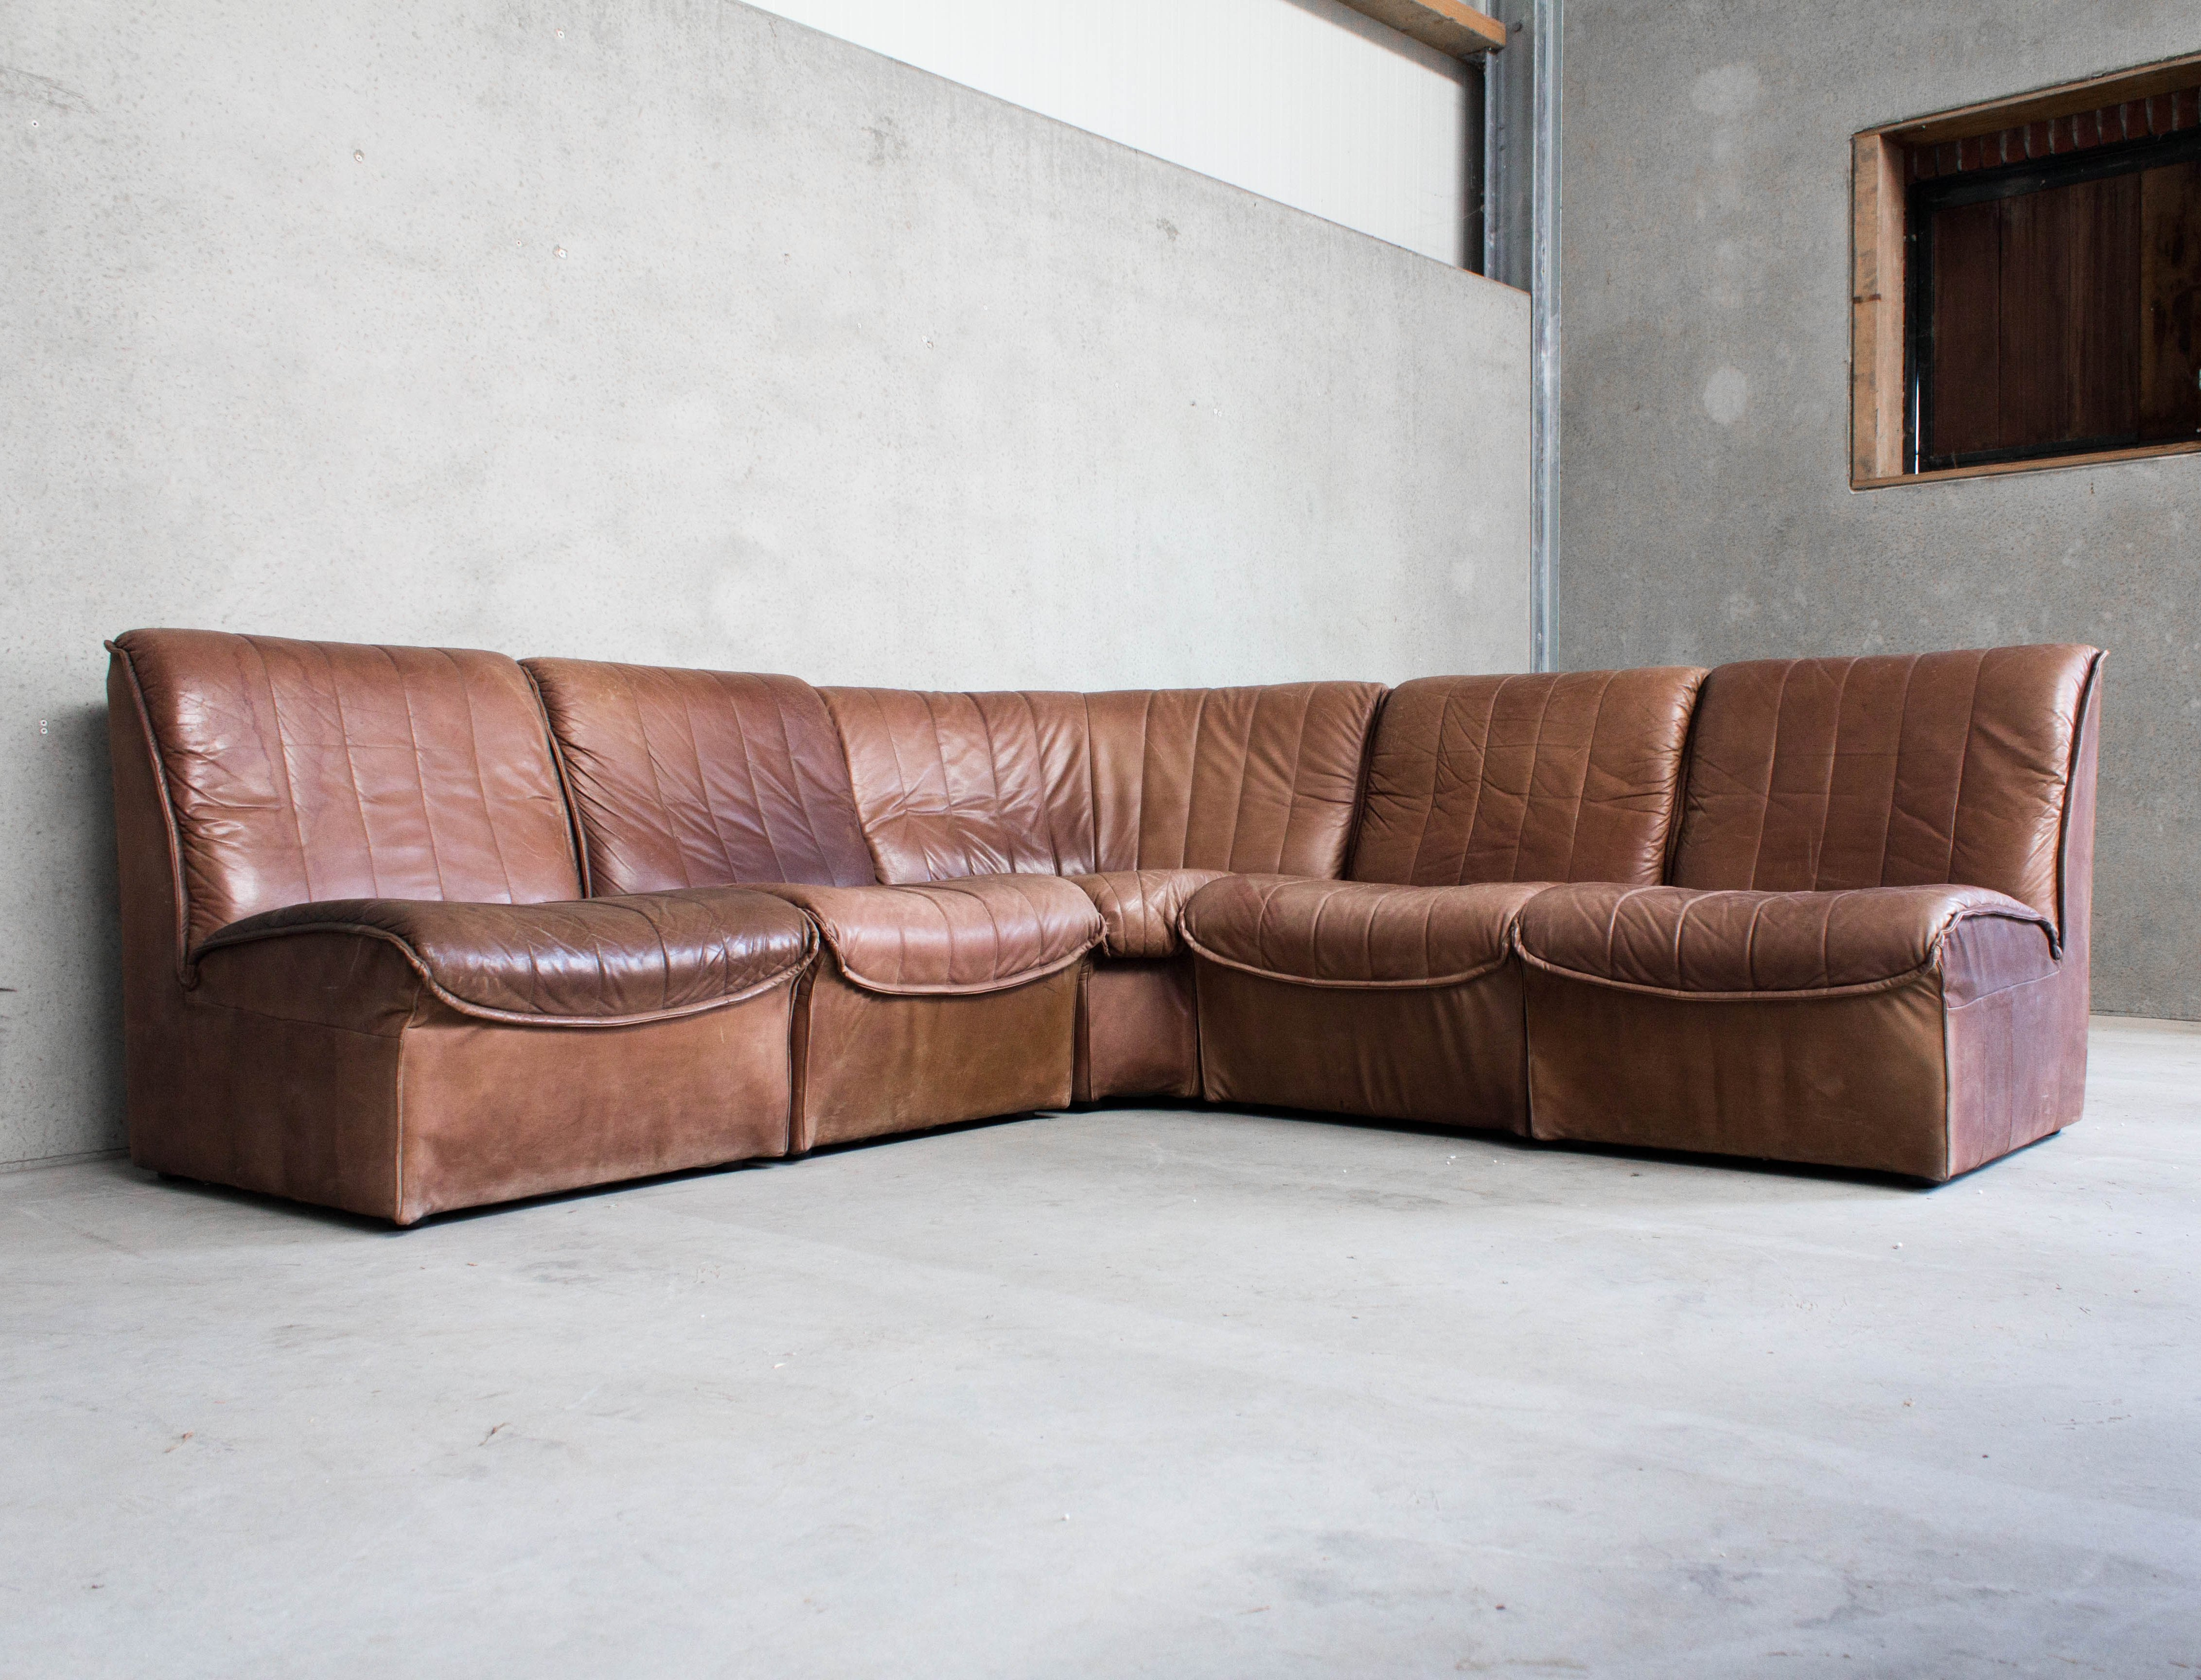 Picture of: Modular Sofa In Cognac Brown Leather 95869